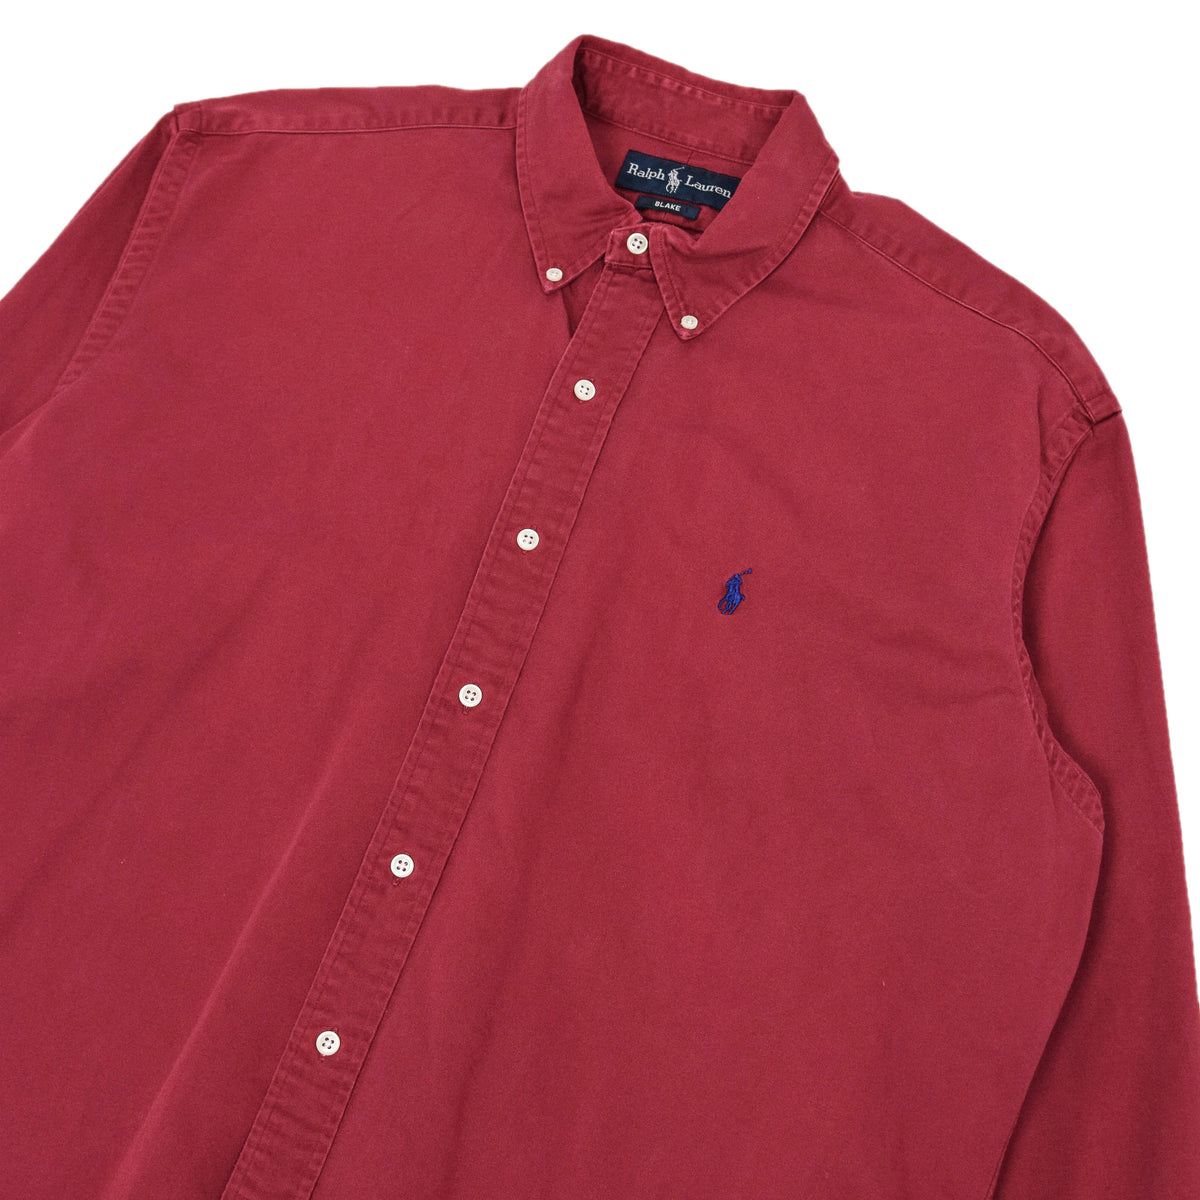 Vintage 80s Ralph Lauren Polo Long Sleeve Cotton Shirt Red L / XL chest